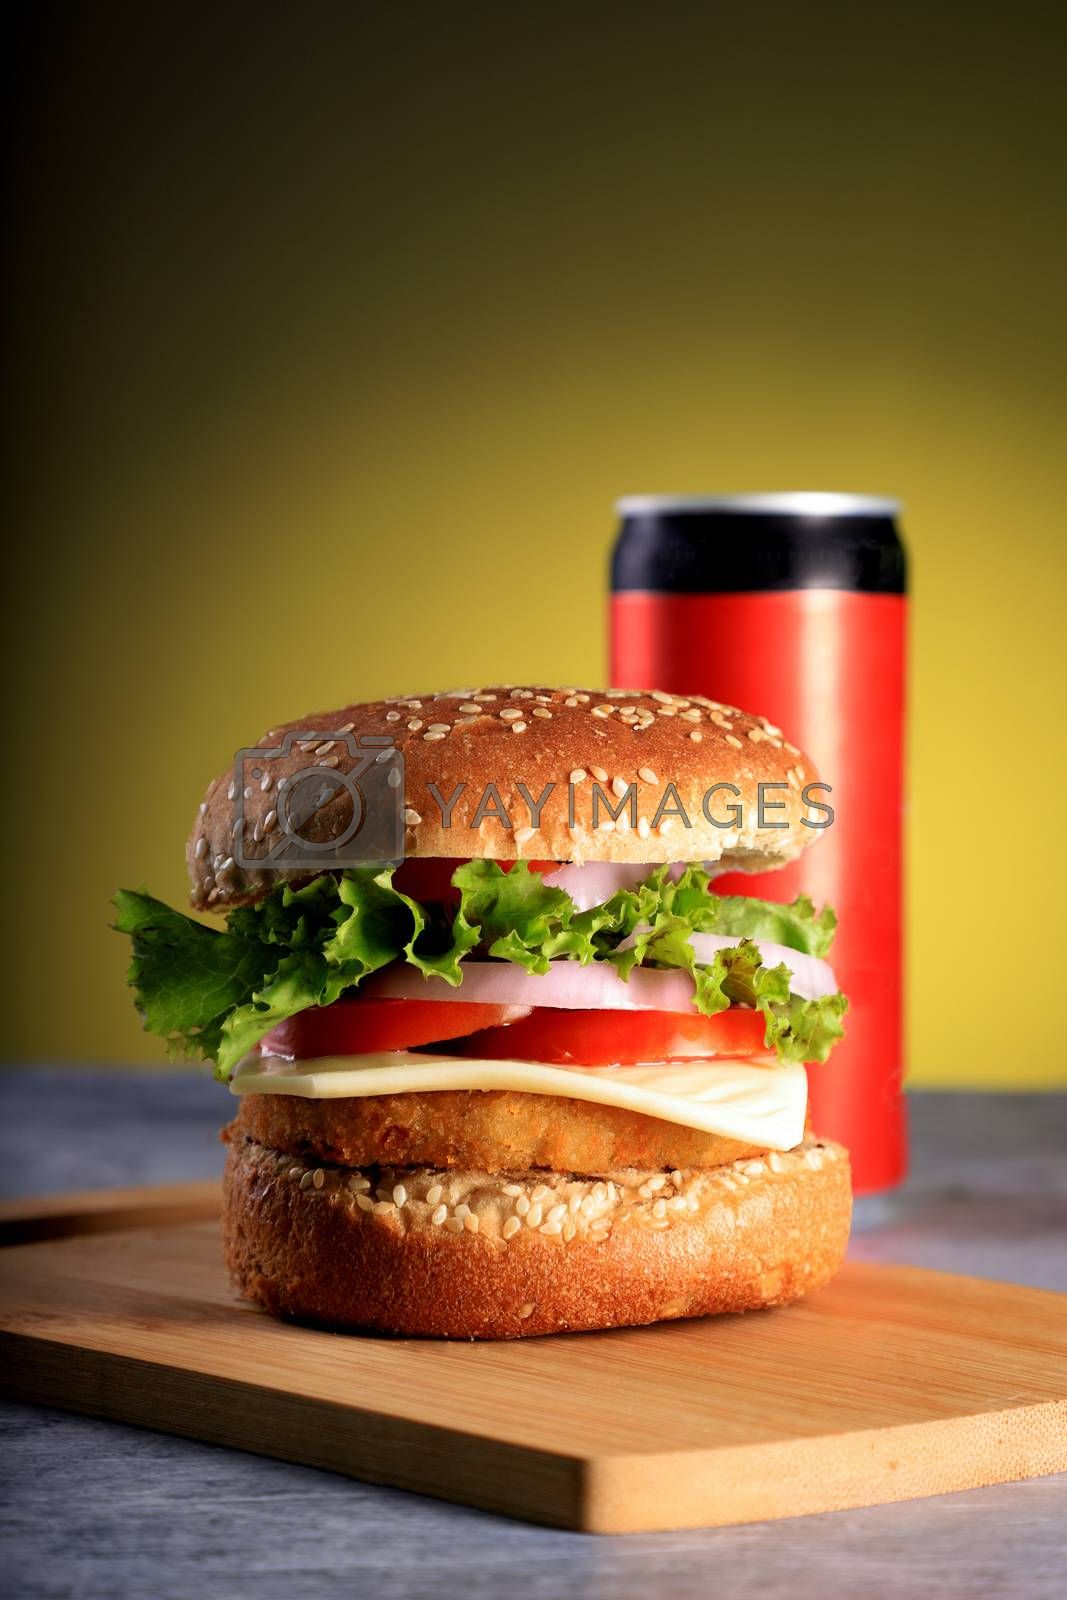 Fast Food Burger with a Cold Drink Can